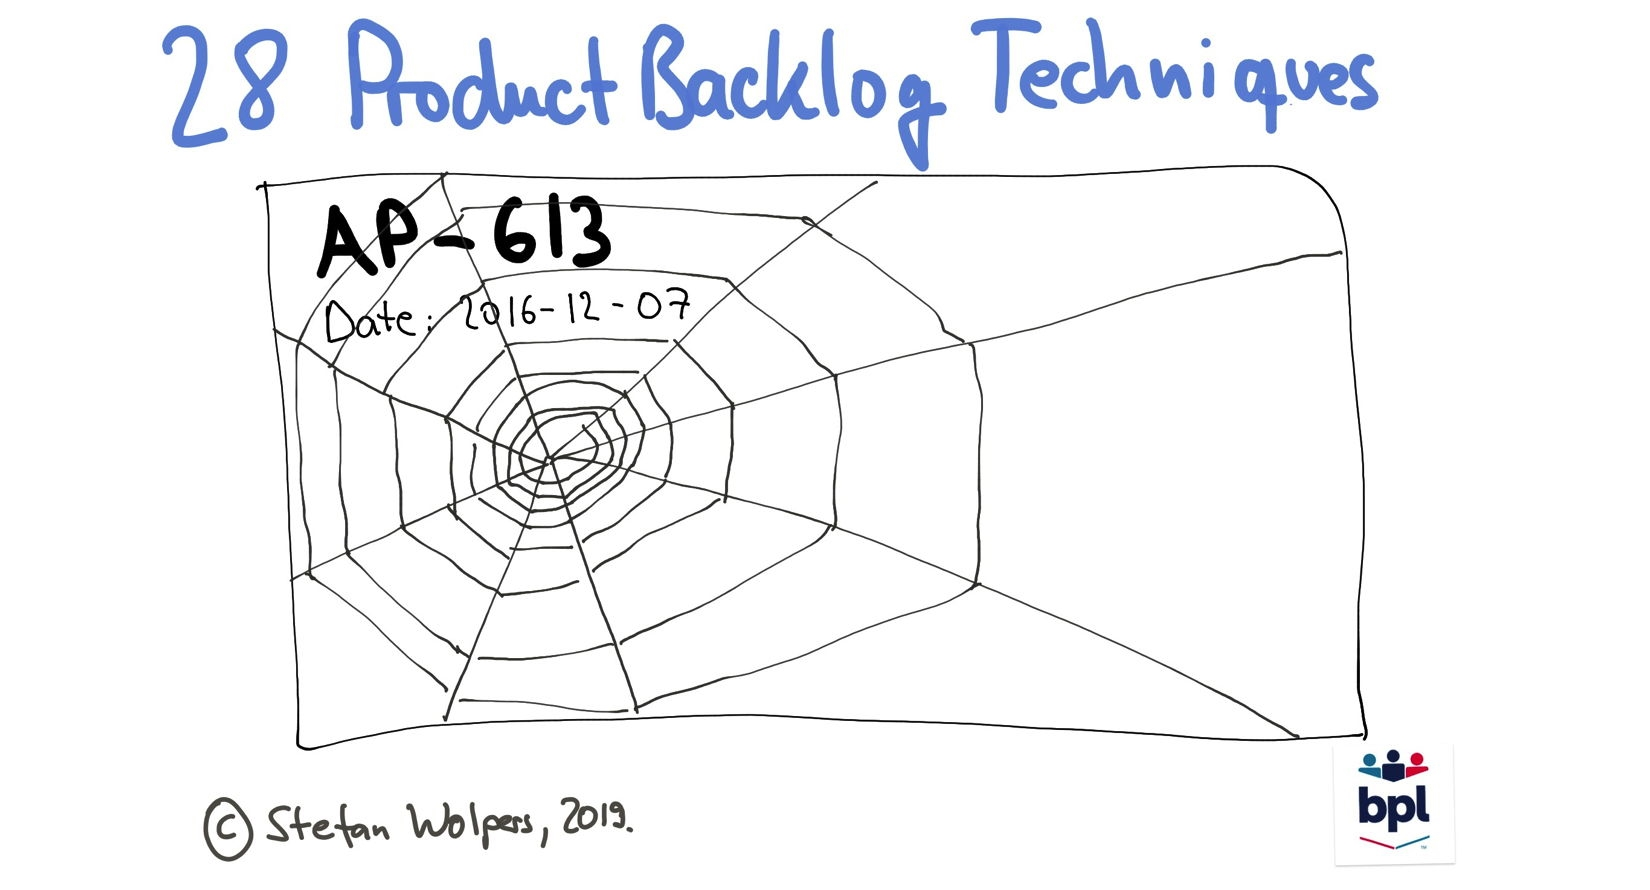 Ideas on How to Improve Your Product Backlog Management Techniques